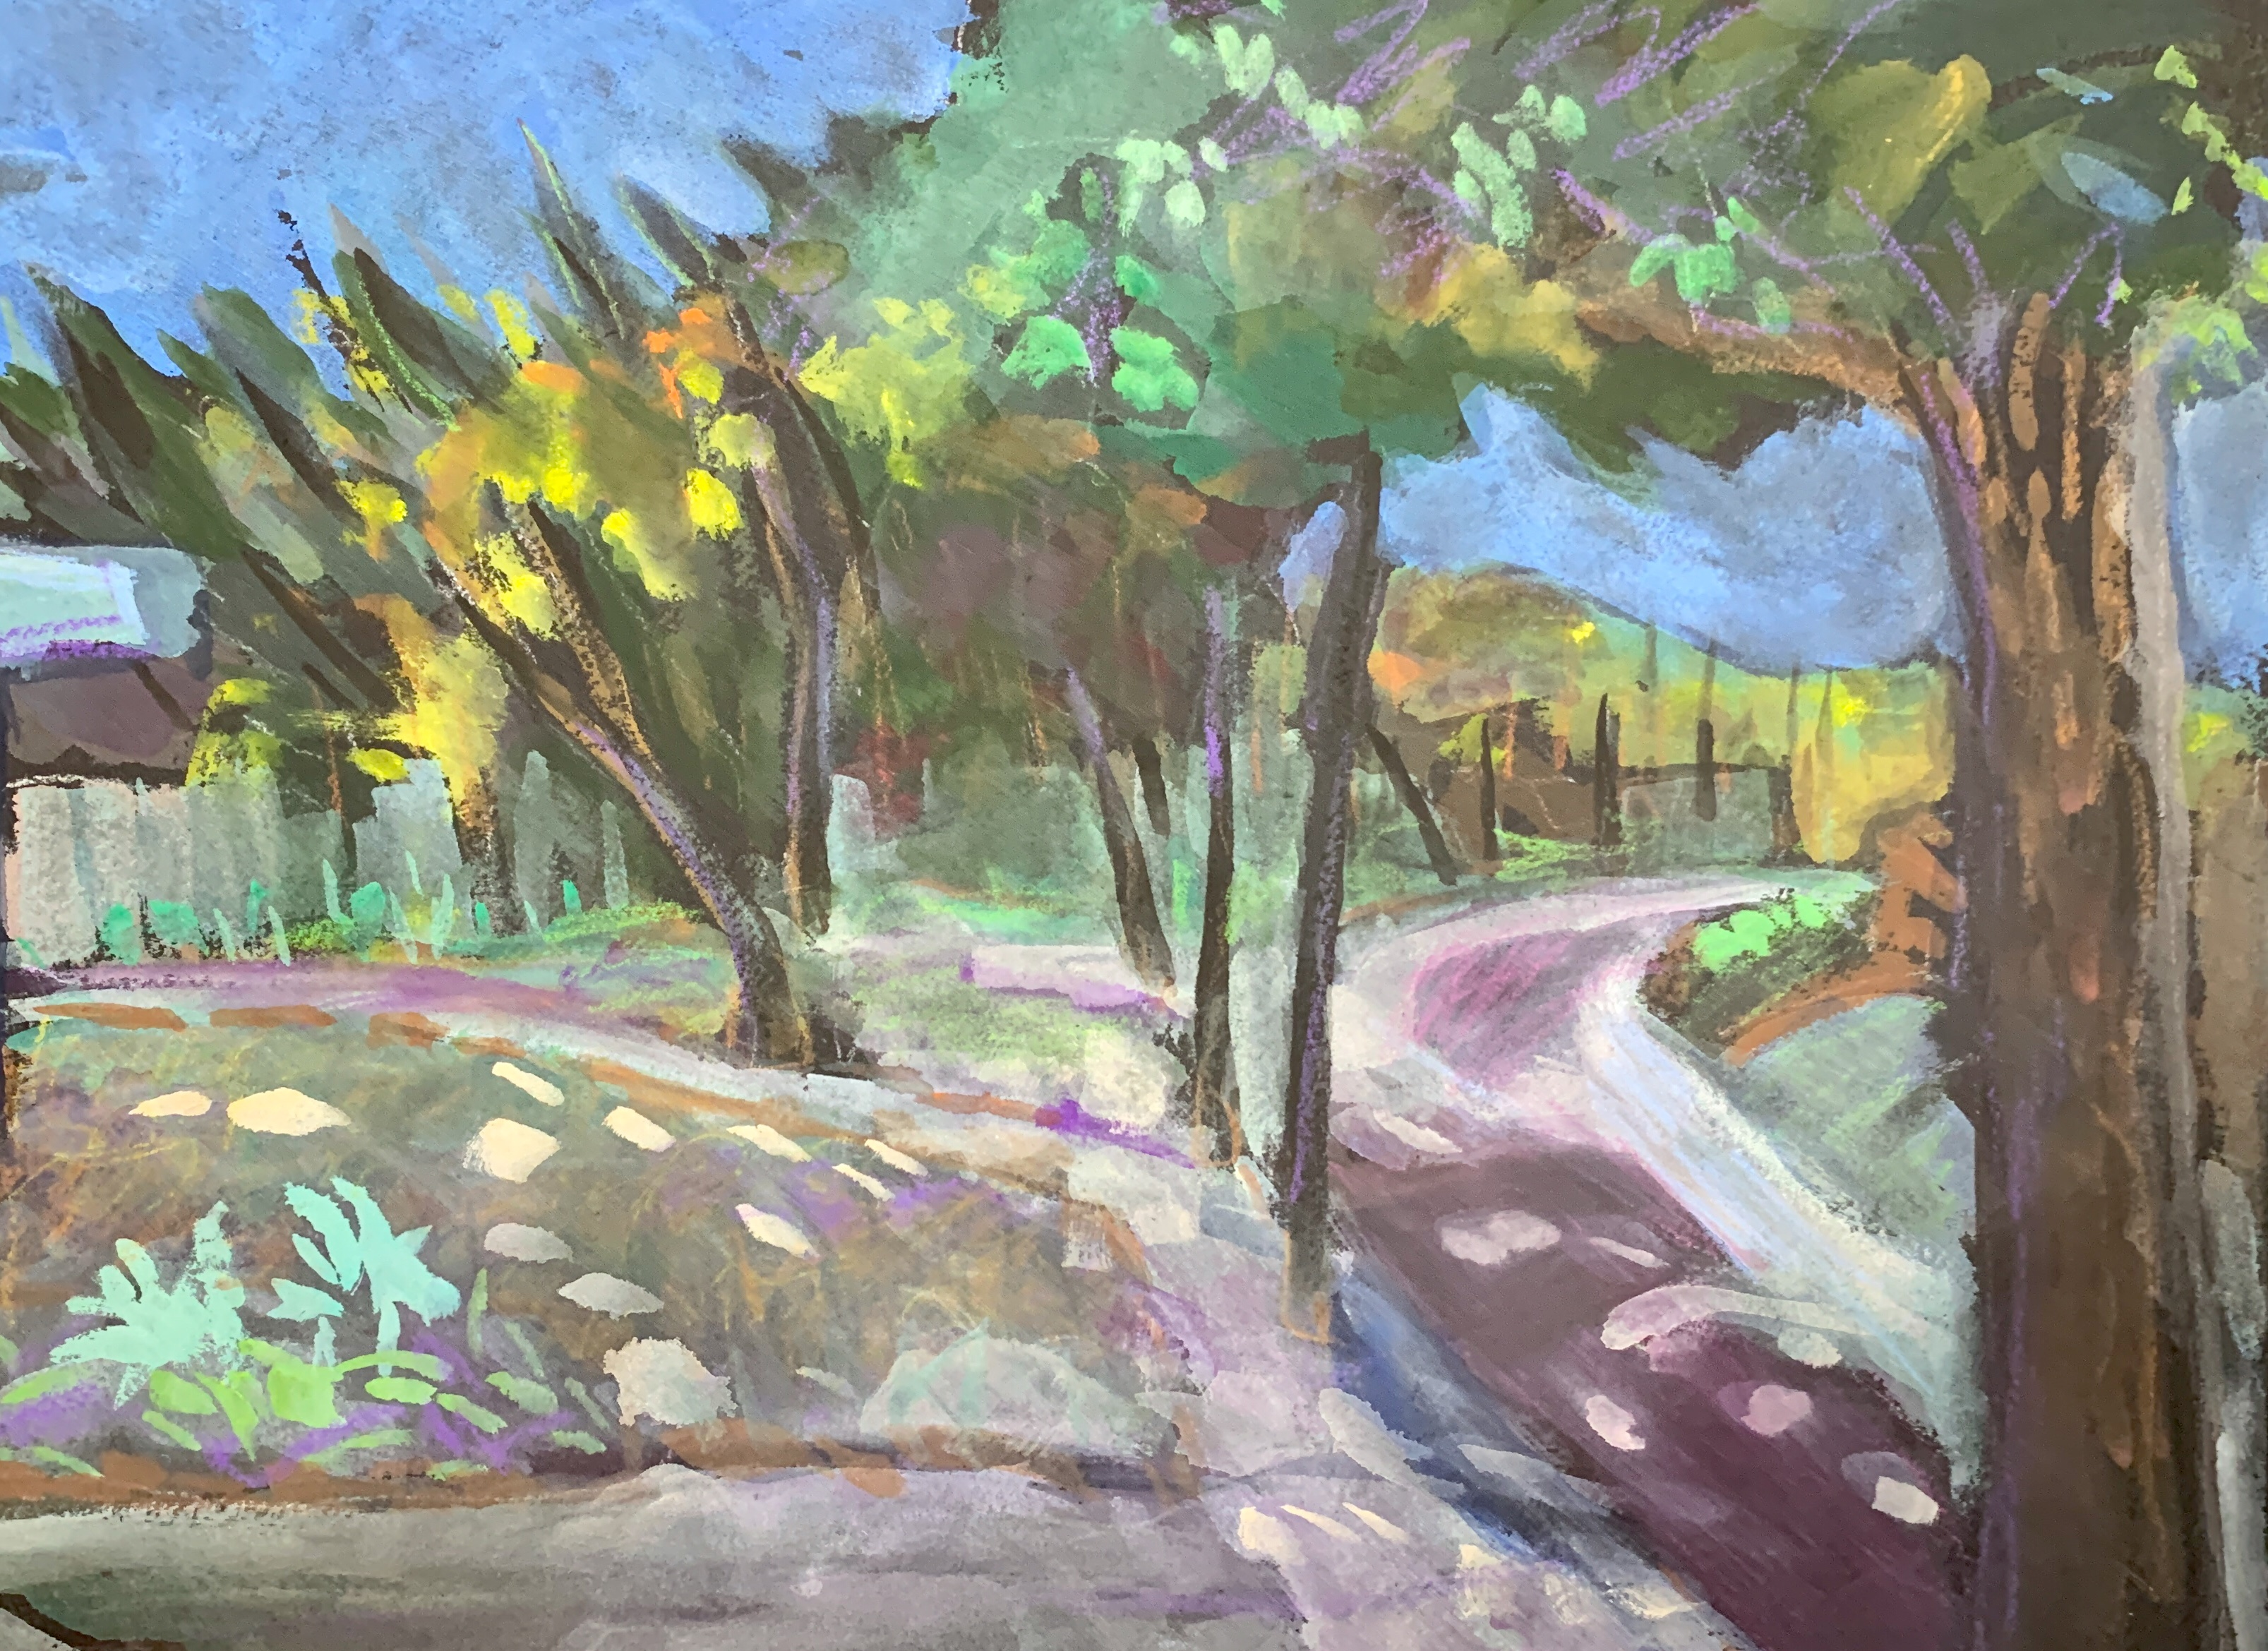 Sketch by Sarah Sullivan of a Street in San Diego